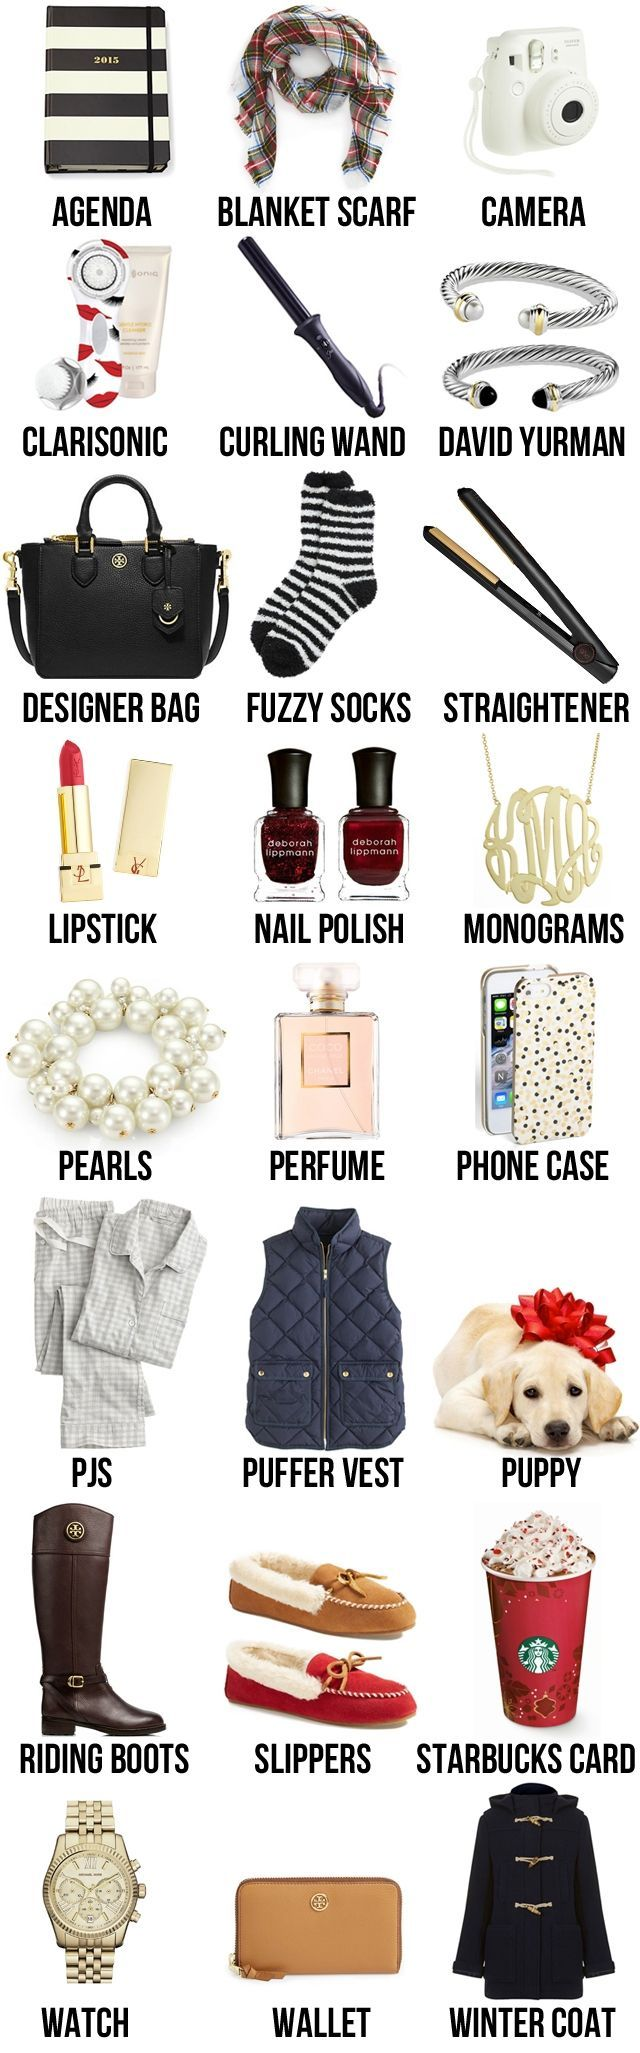 Stumped on what to ask for this Christmas? This list has everything for her [big, small & budget friendly]…